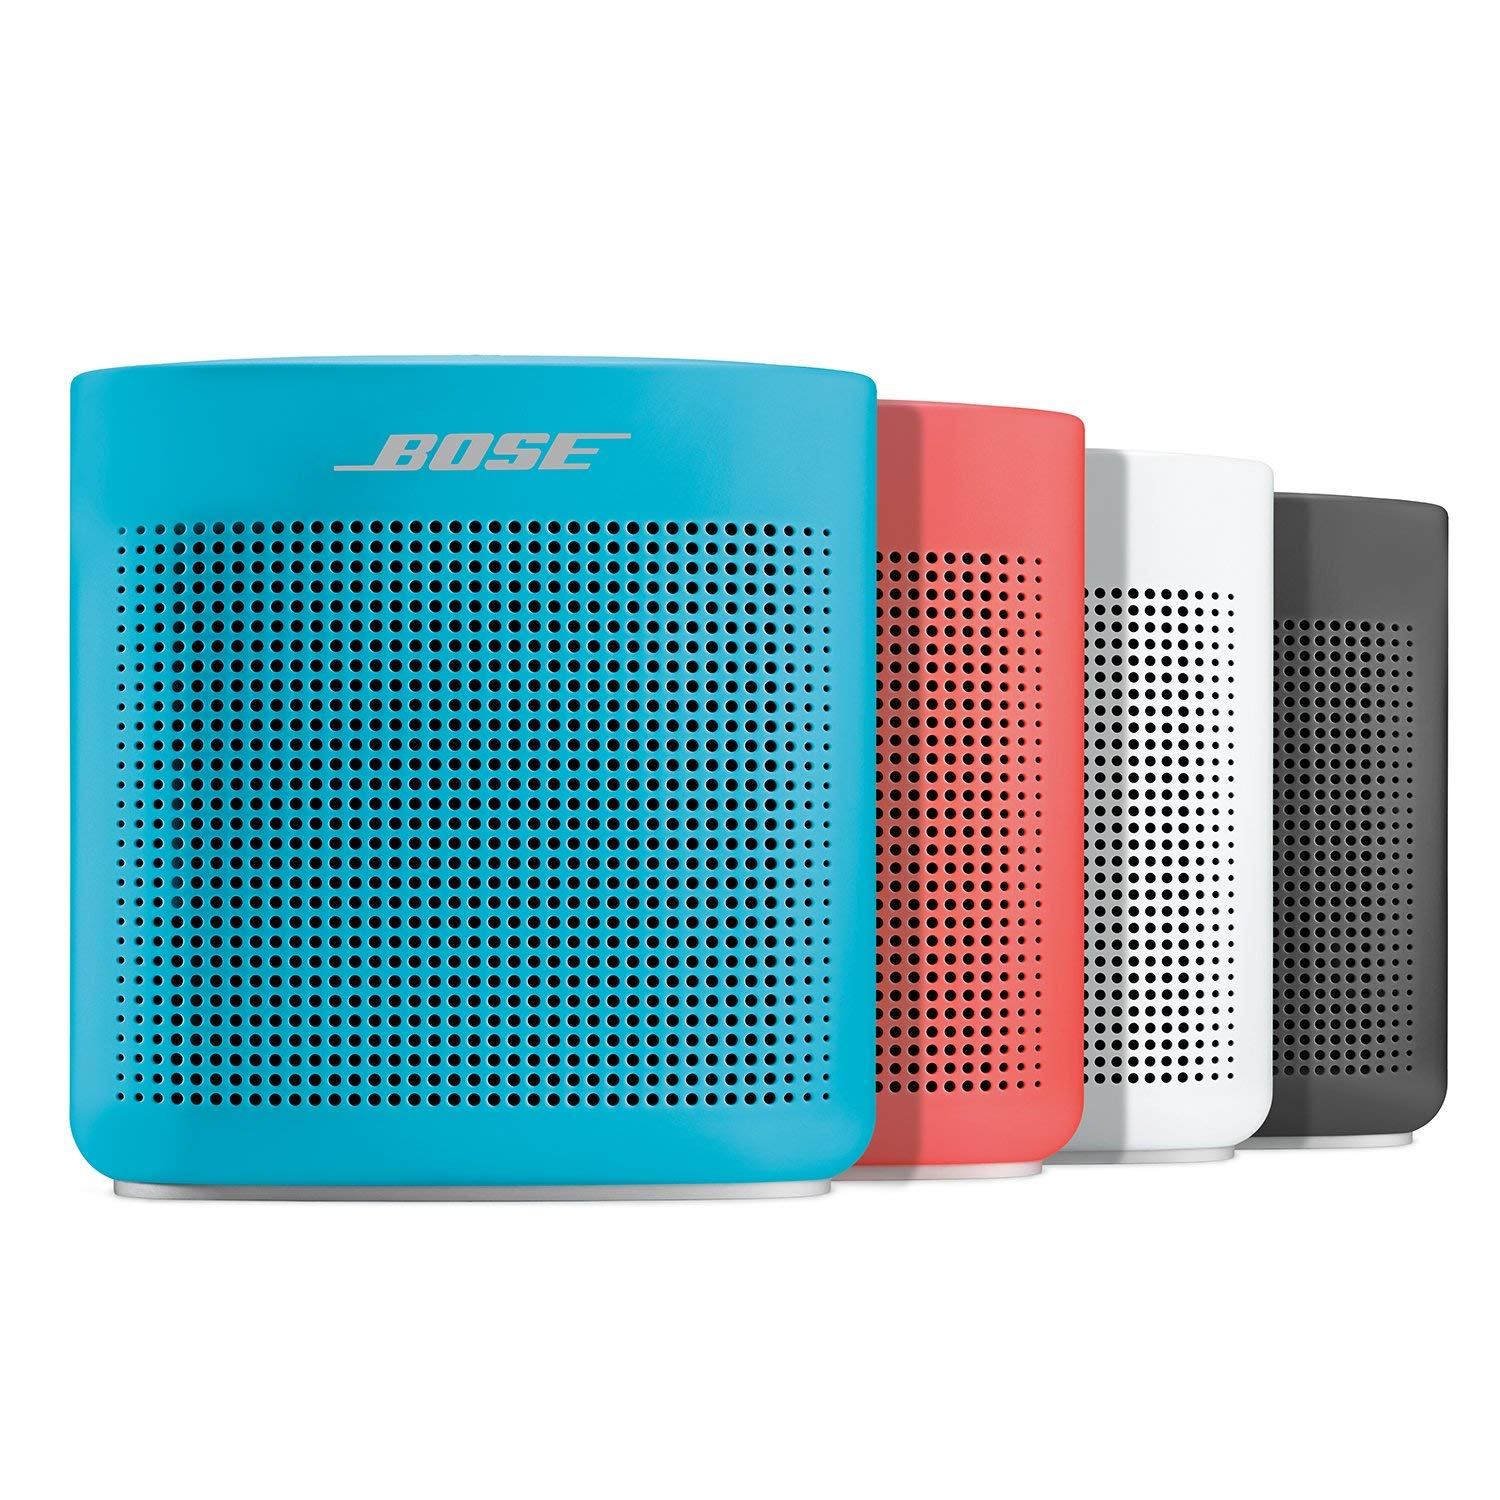 gift guide for him - wireless speaker- shegotguts.jpg